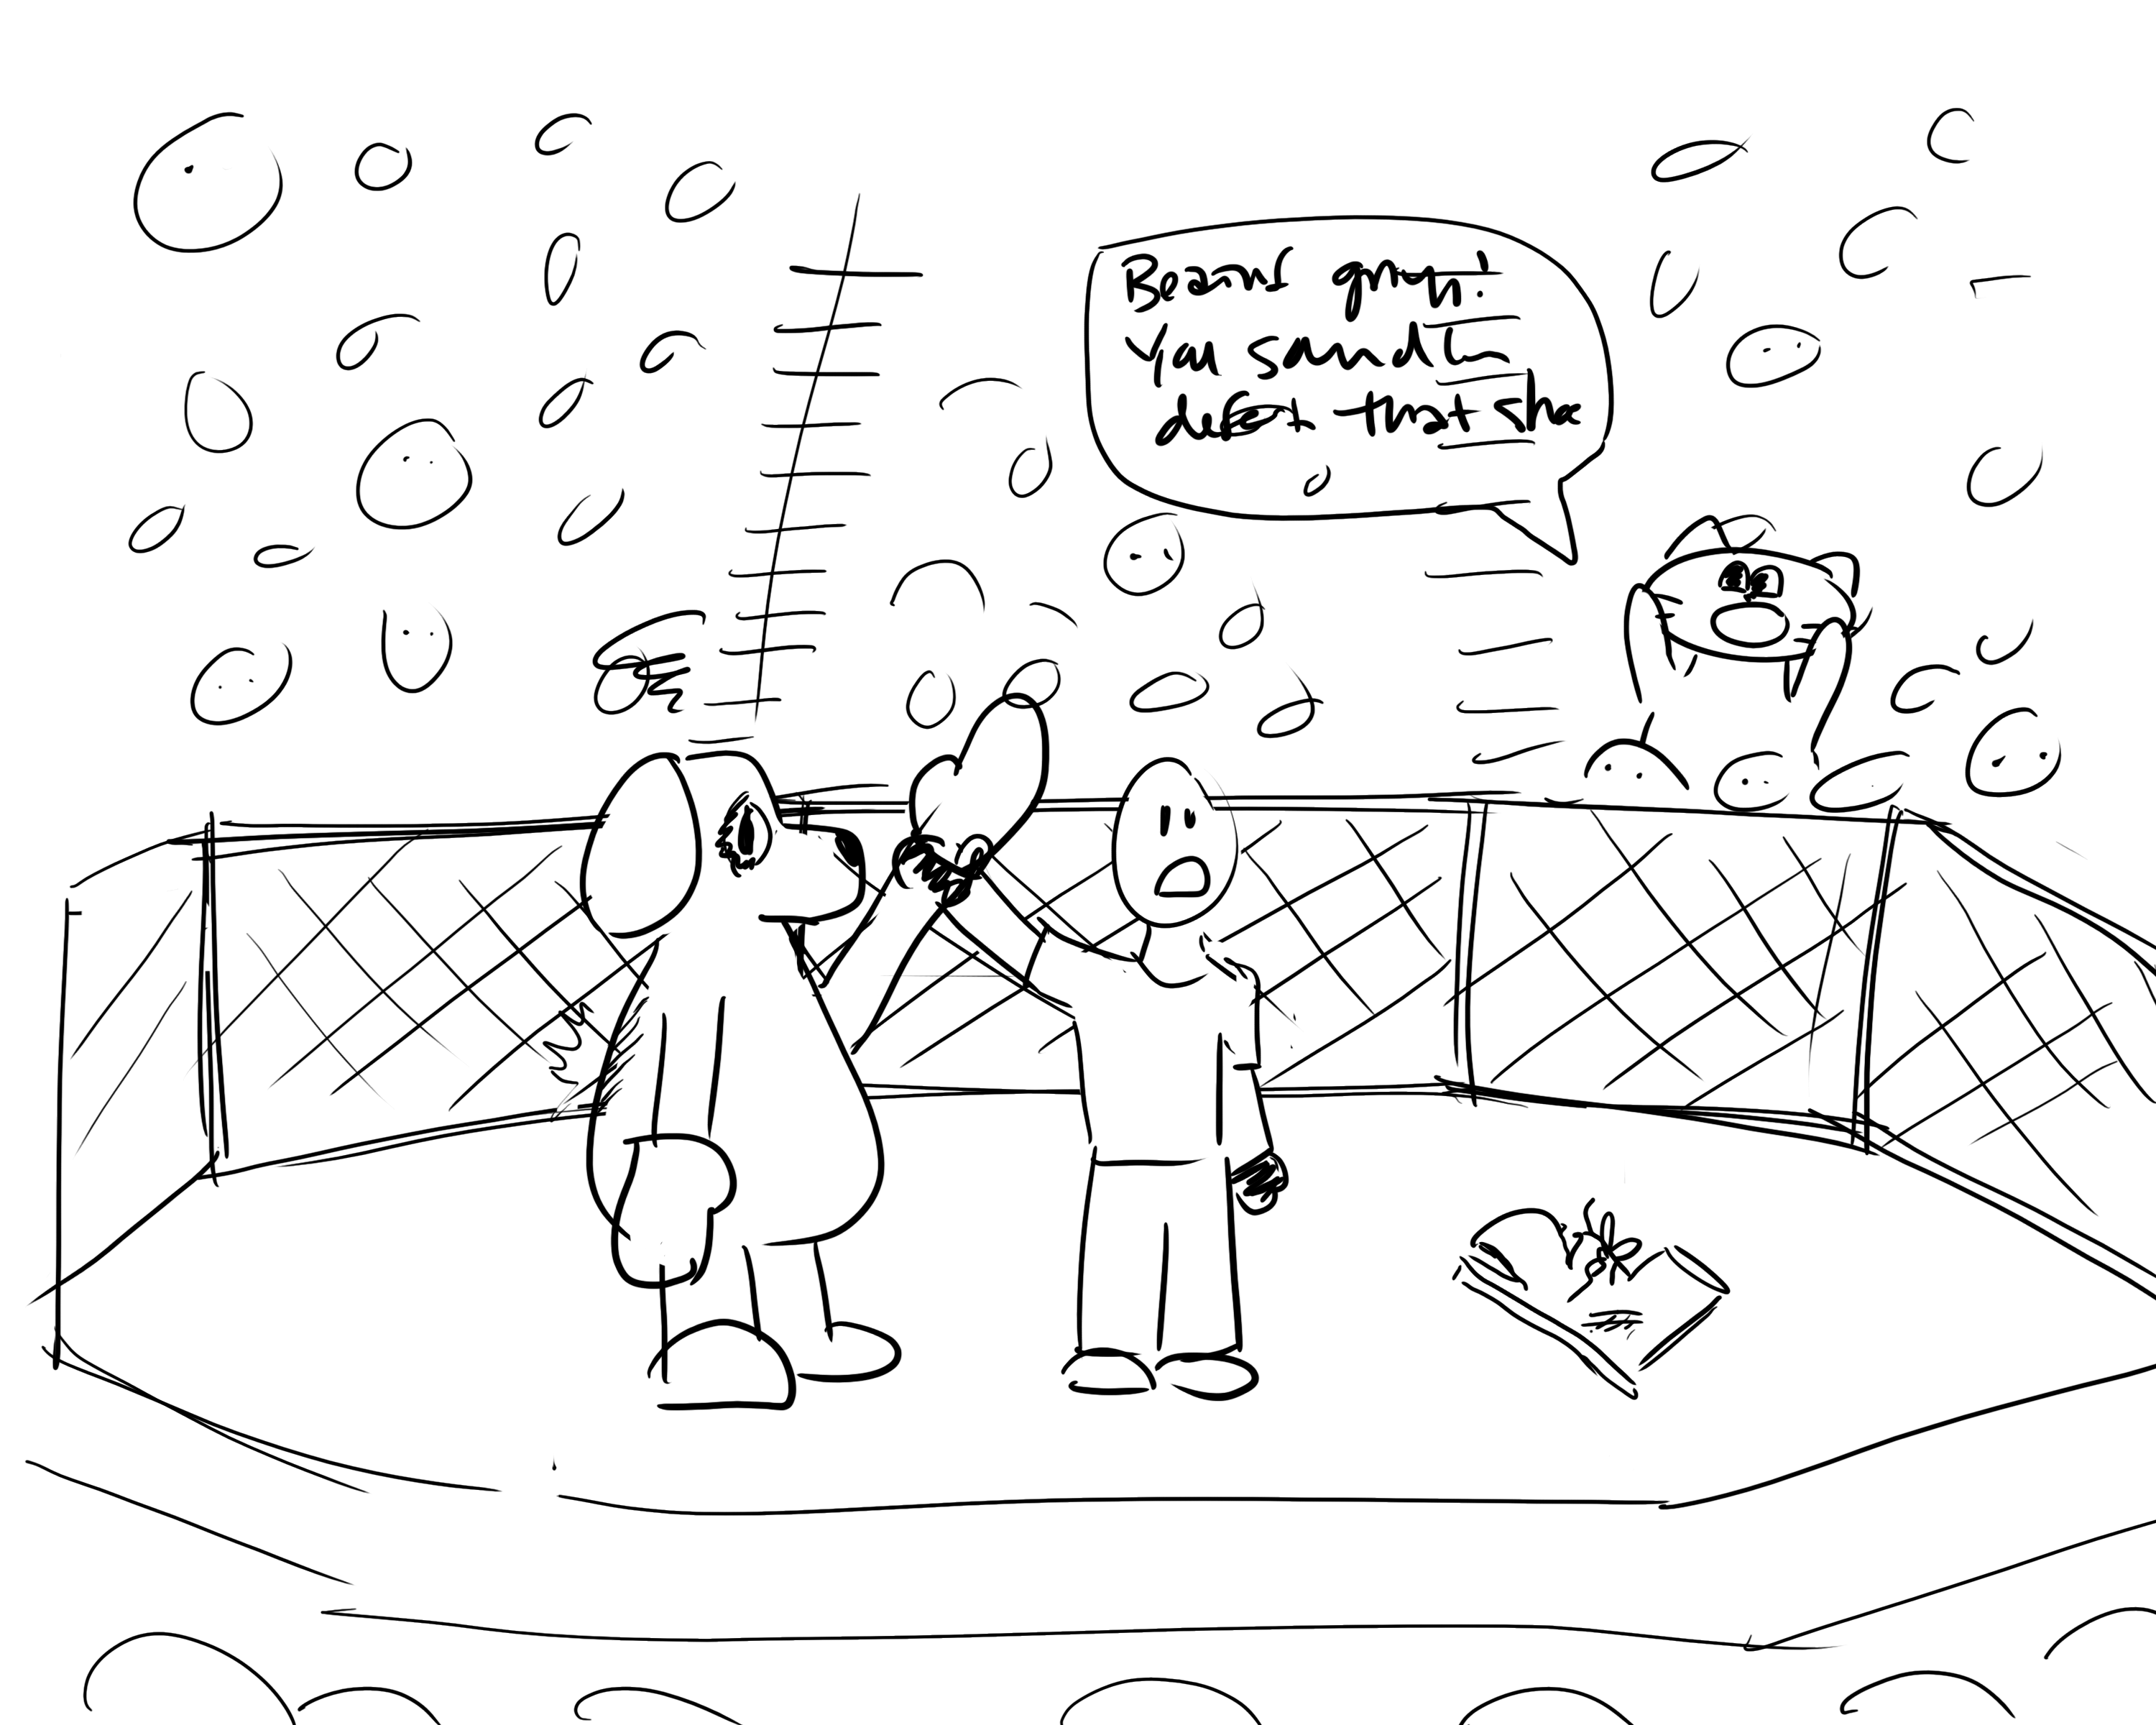 Sketch of MMA cartoon